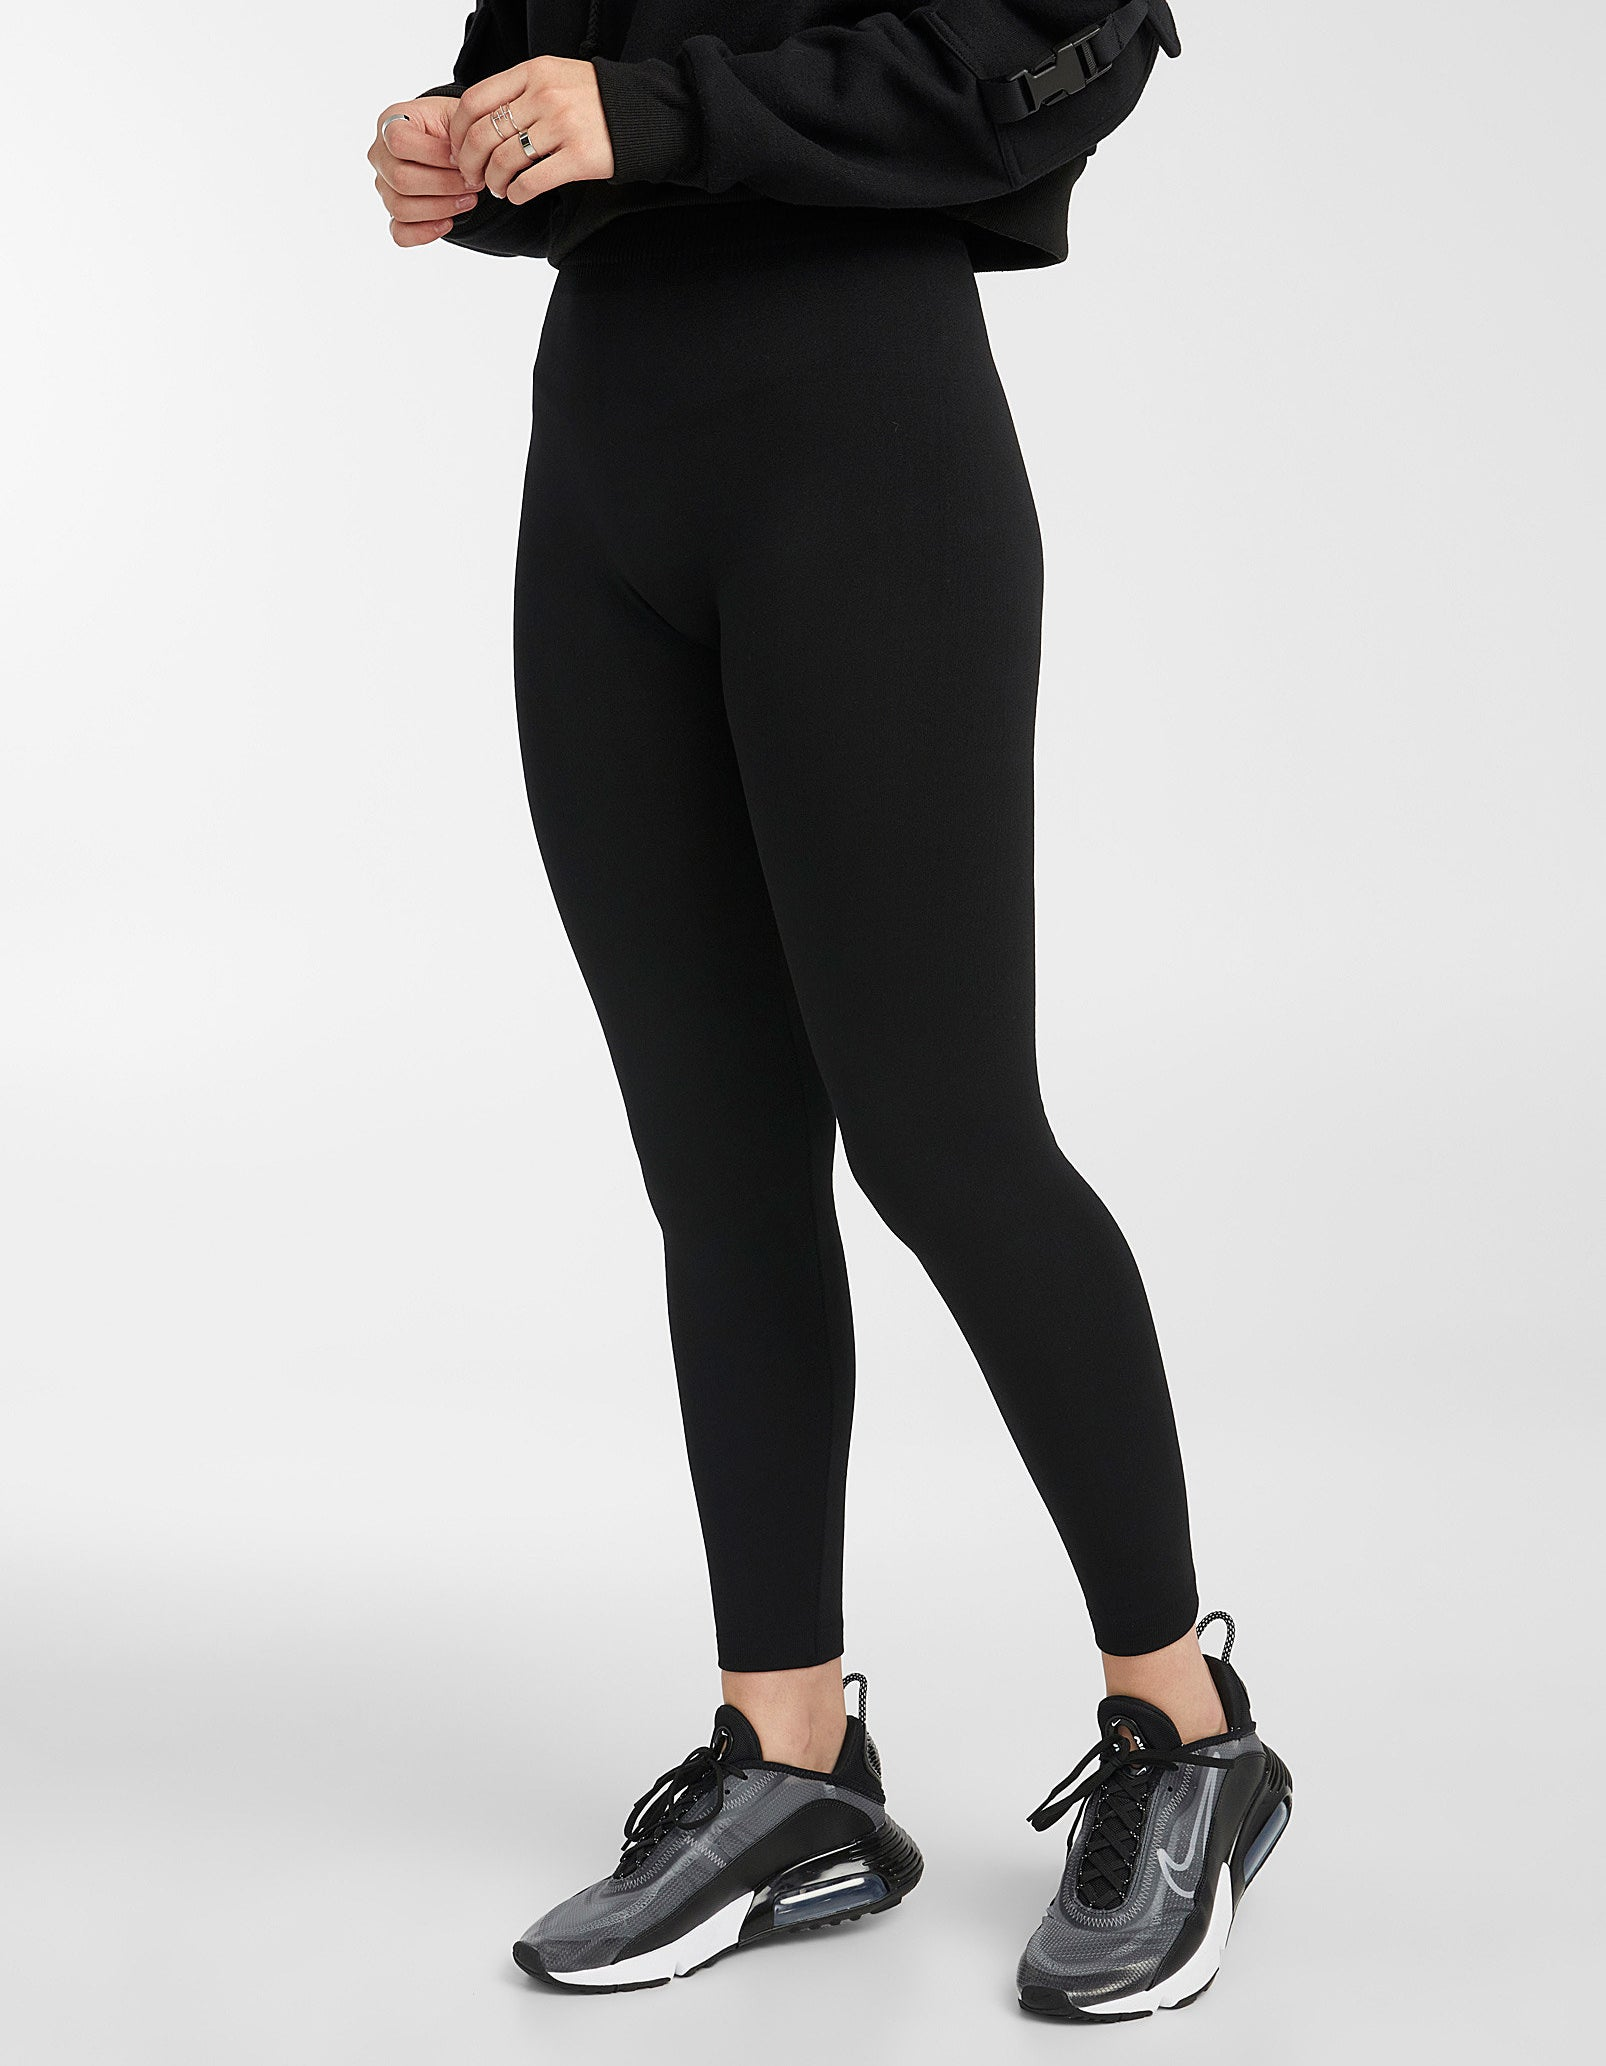 A person wearing leggings and running shoes